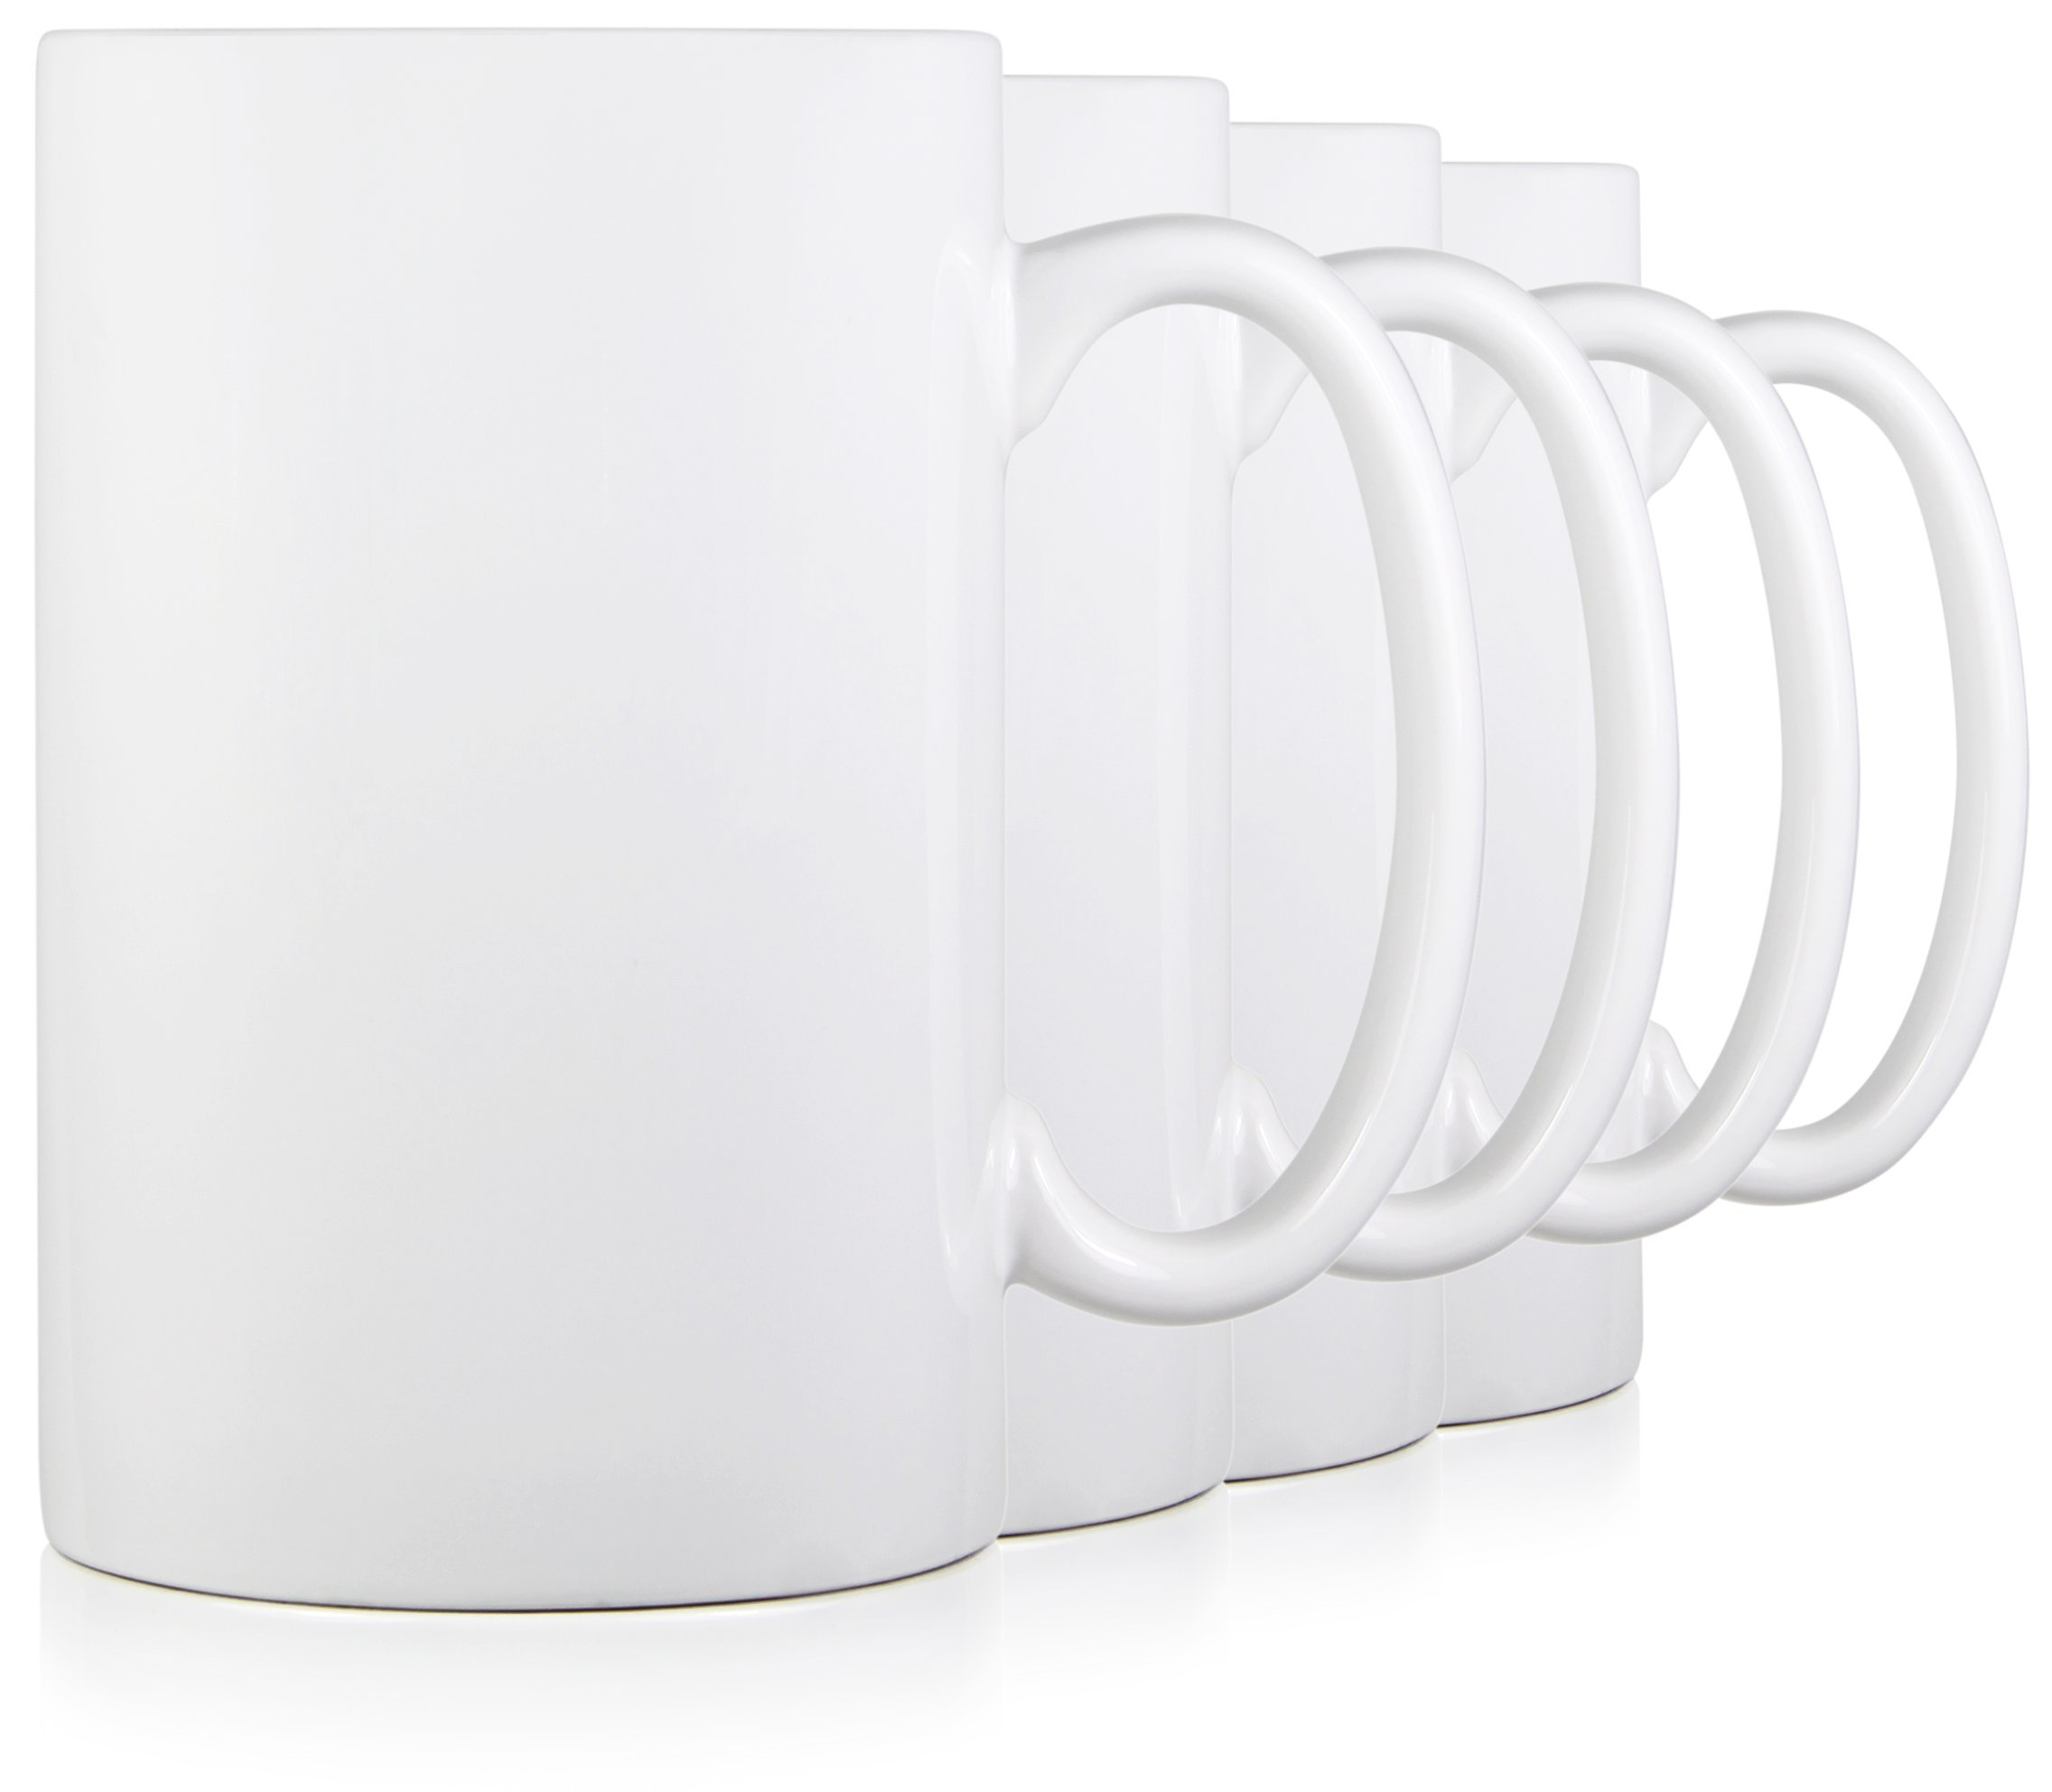 Serami 17oz White Classic Tall Mugs for Coffee or Tea. Large Handles and Ceramic Construction, Set of 4